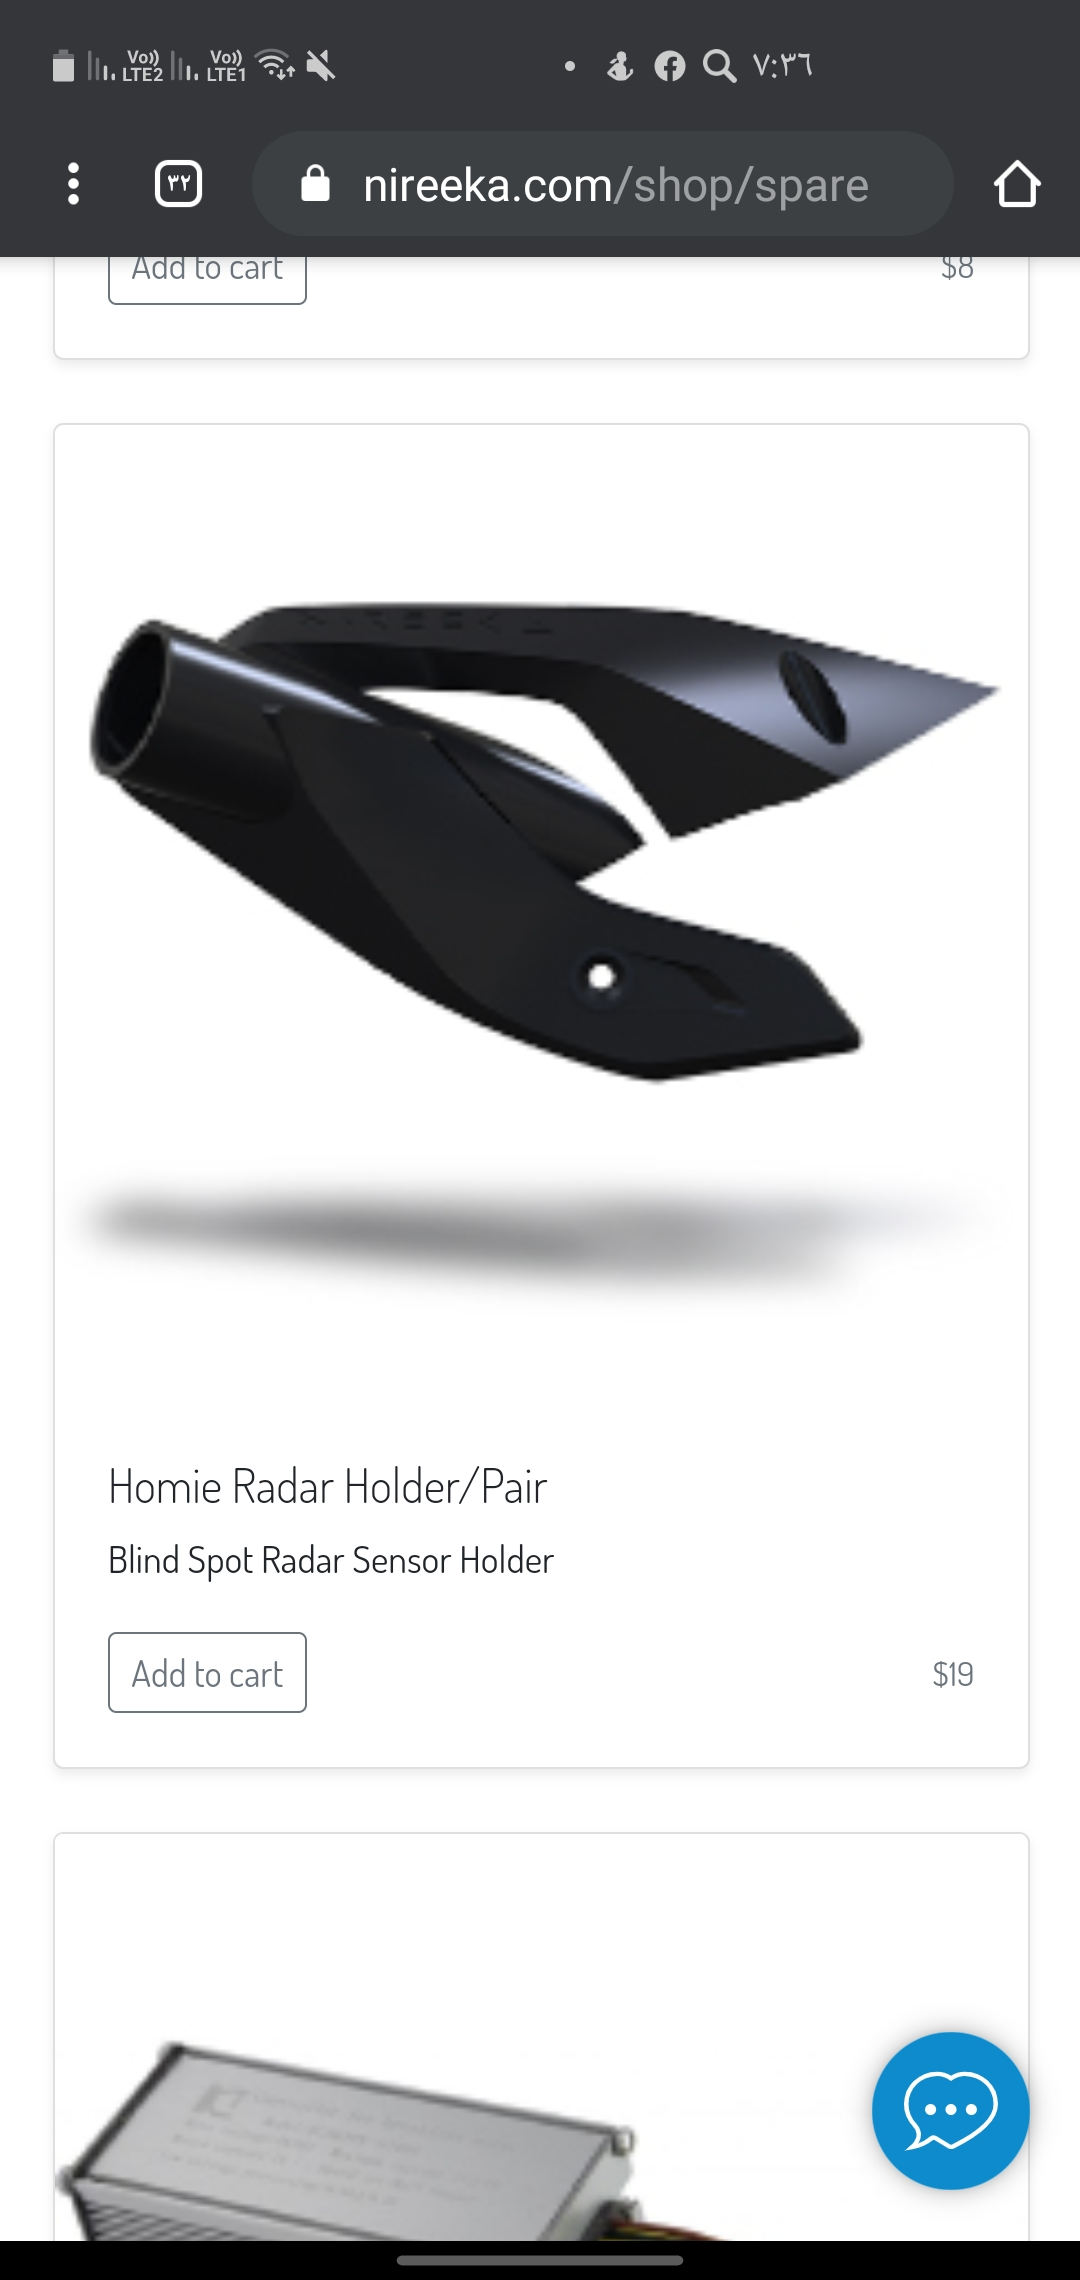 Homie Radar Holder/Pair